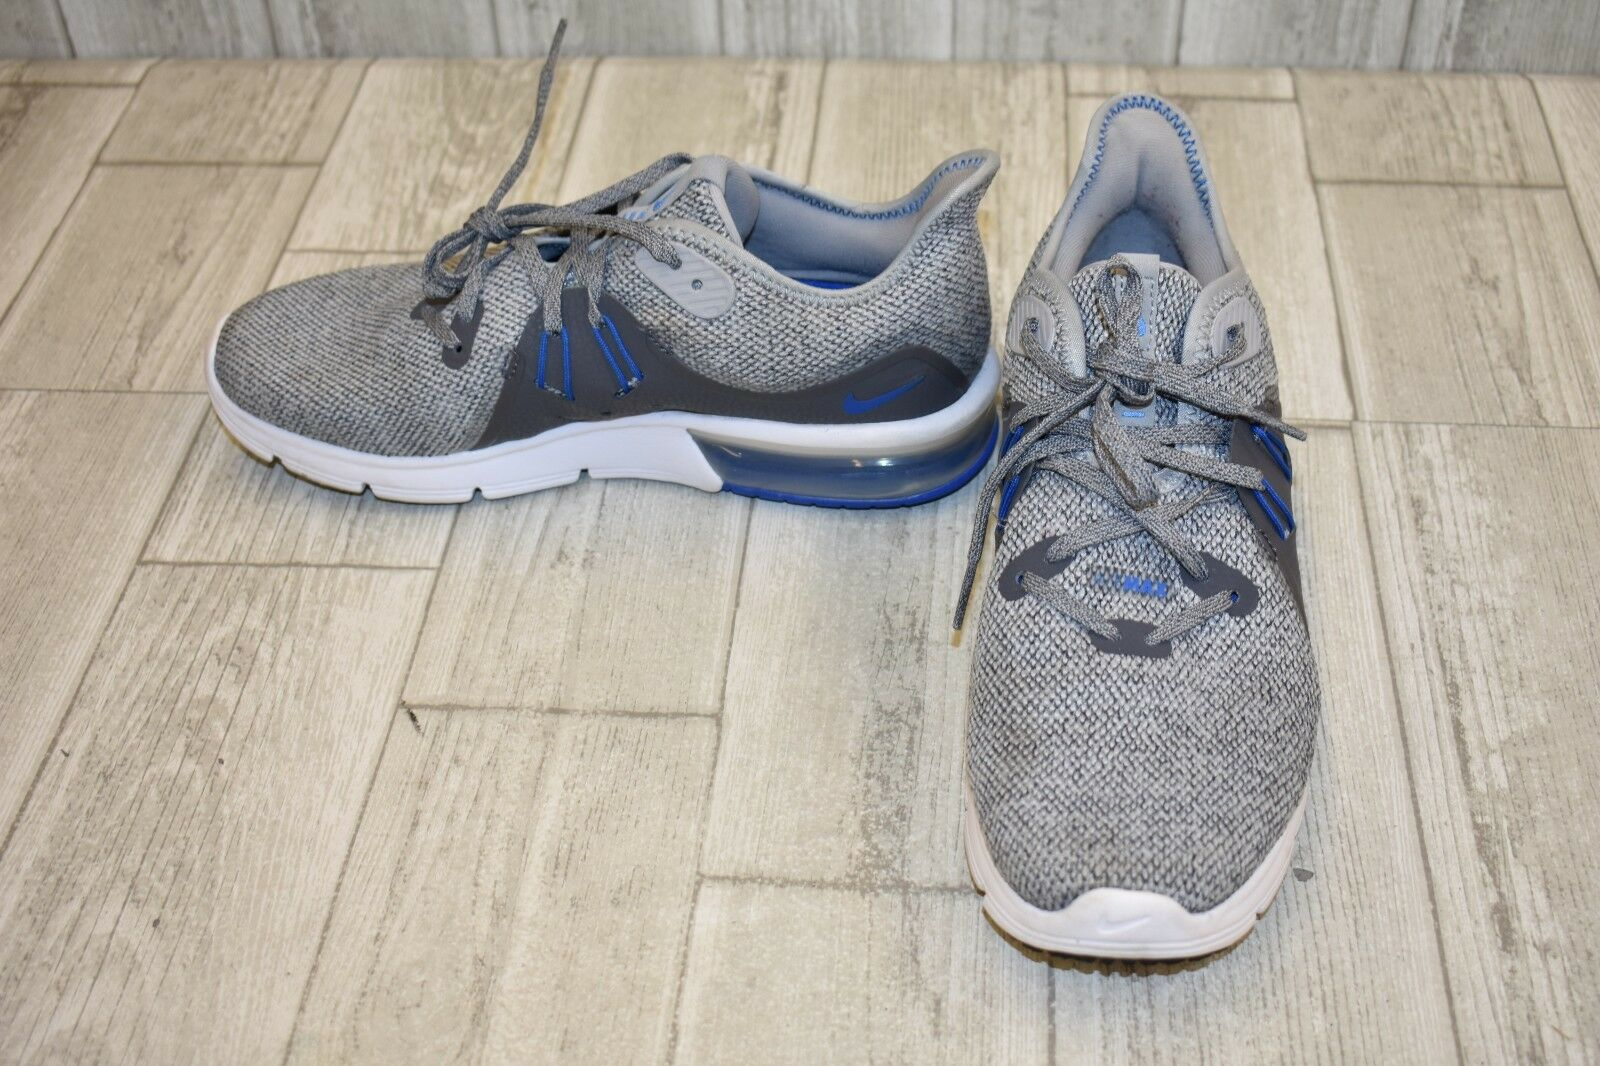 Nike Air Max Running shoes-Men's size 7.5 Grey